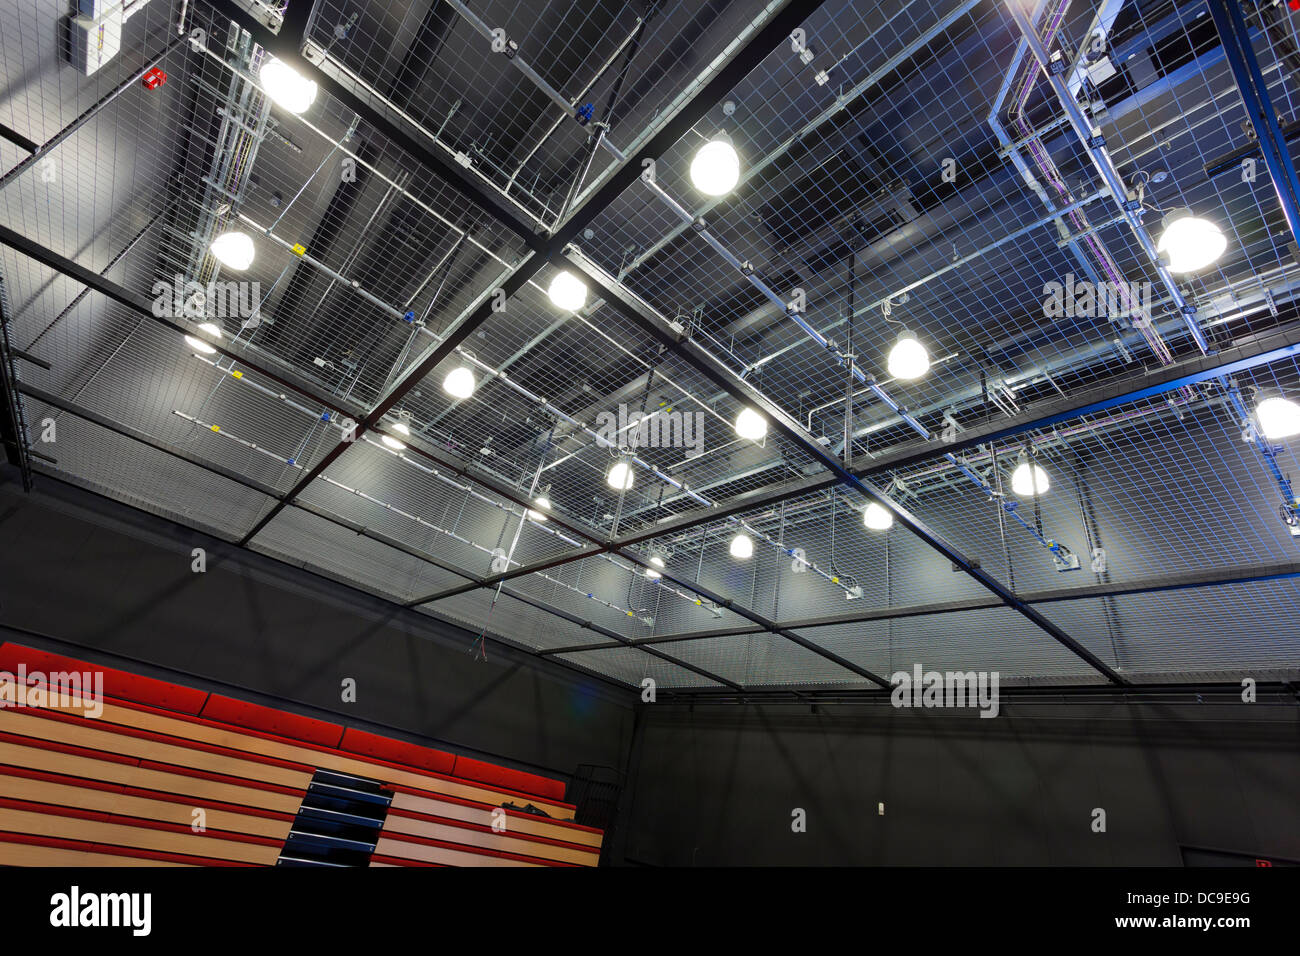 mesh mezzanine floor to access lighting rig in school theatre - Stock Image